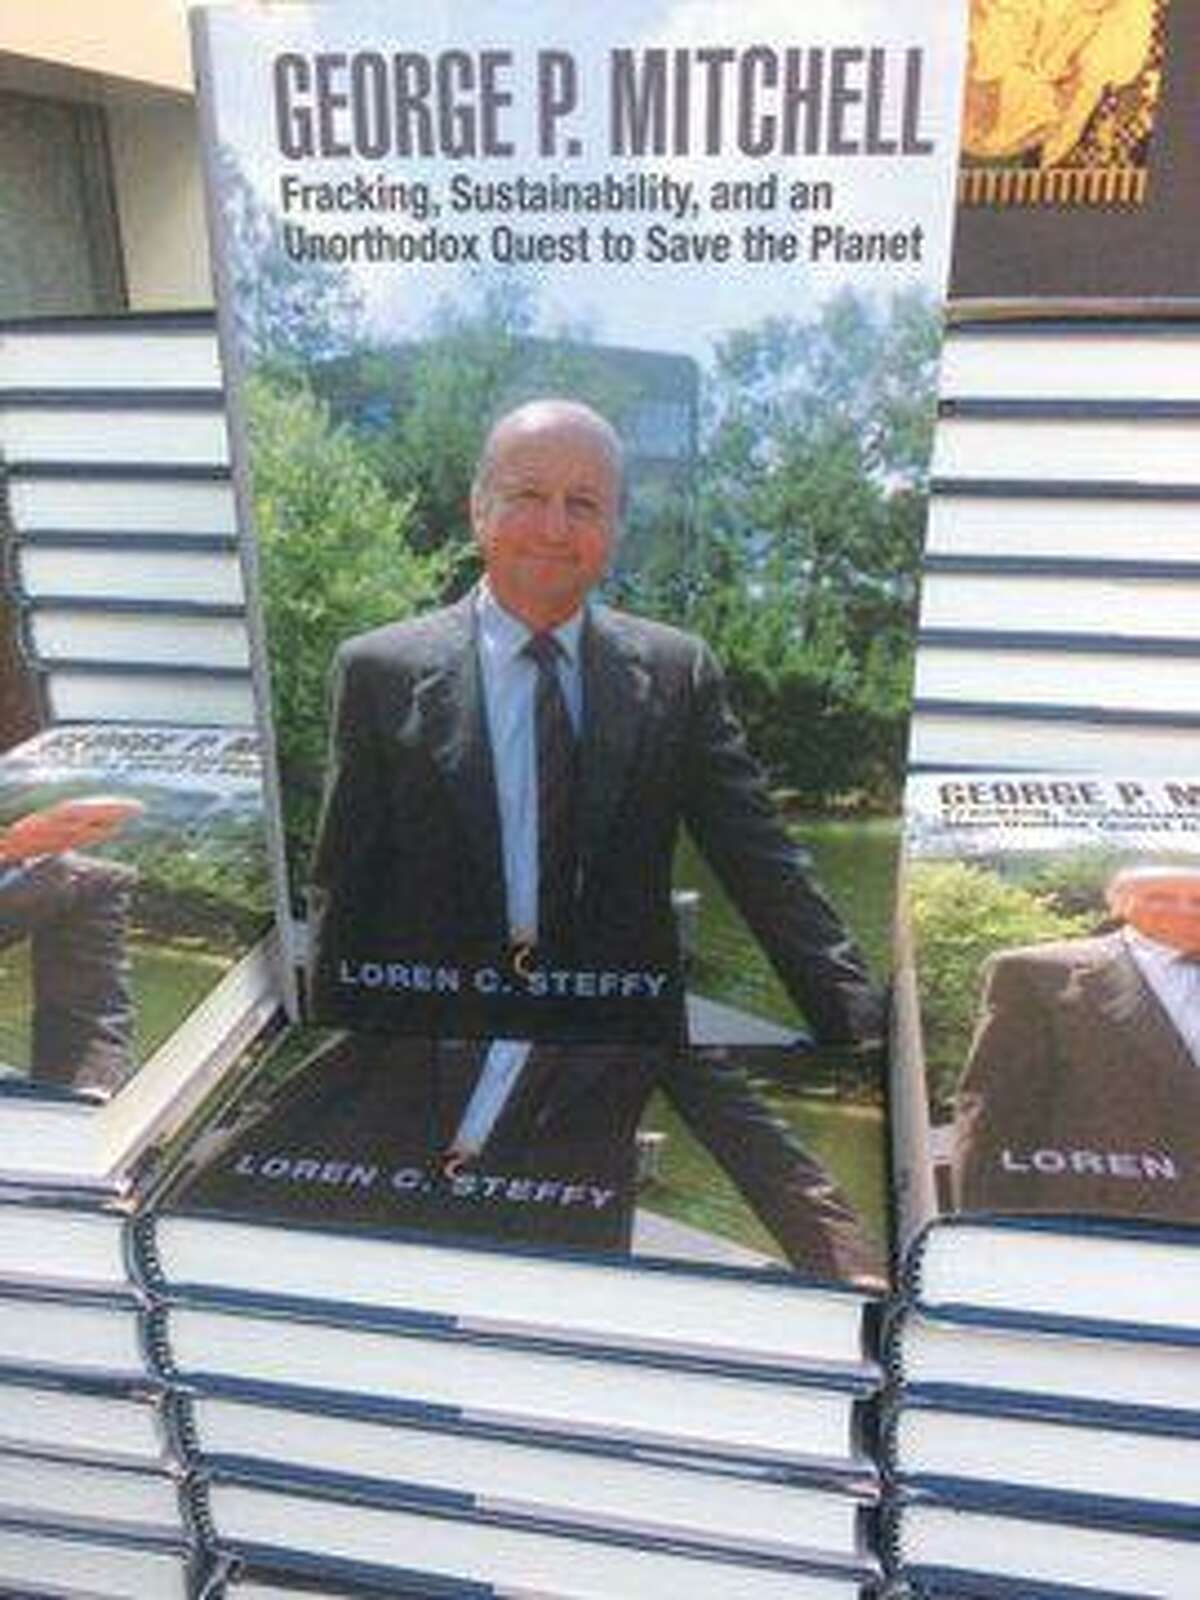 """Loren C. Steffy signs copies of his new book on Oct. 10, 2019, which is about oil tycoon and founder of The Woodlands George Mitchell. The book - titled """"George P. Mitchell: fracking, sustainability, and an unorthodox quest to save the planet"""" - was recently published in hardback form and was on sale during the event"""